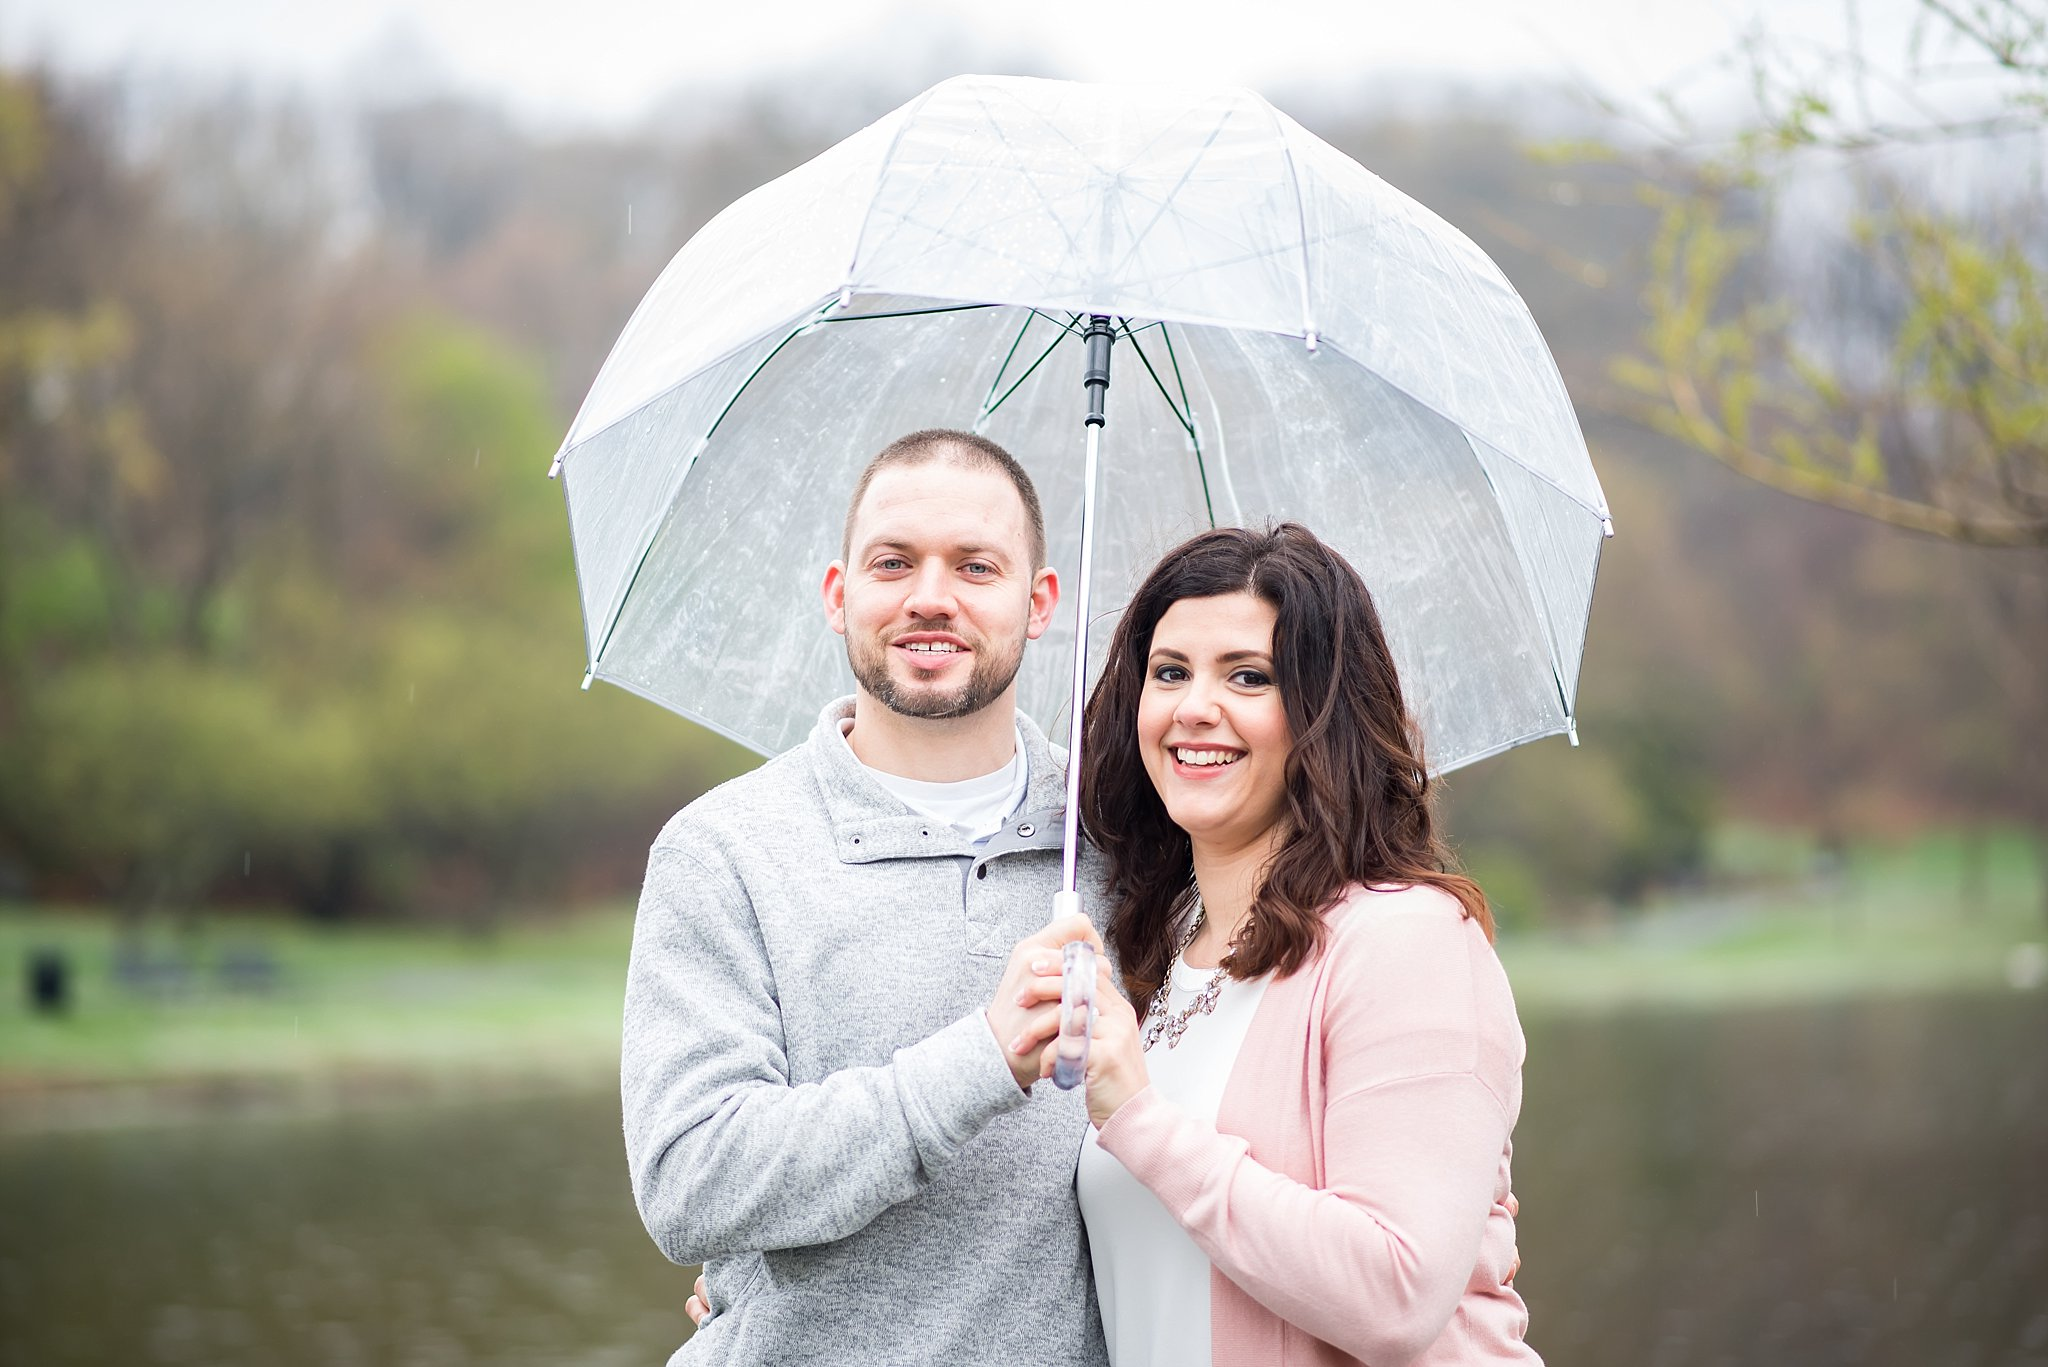 couple in love at larz anderson park